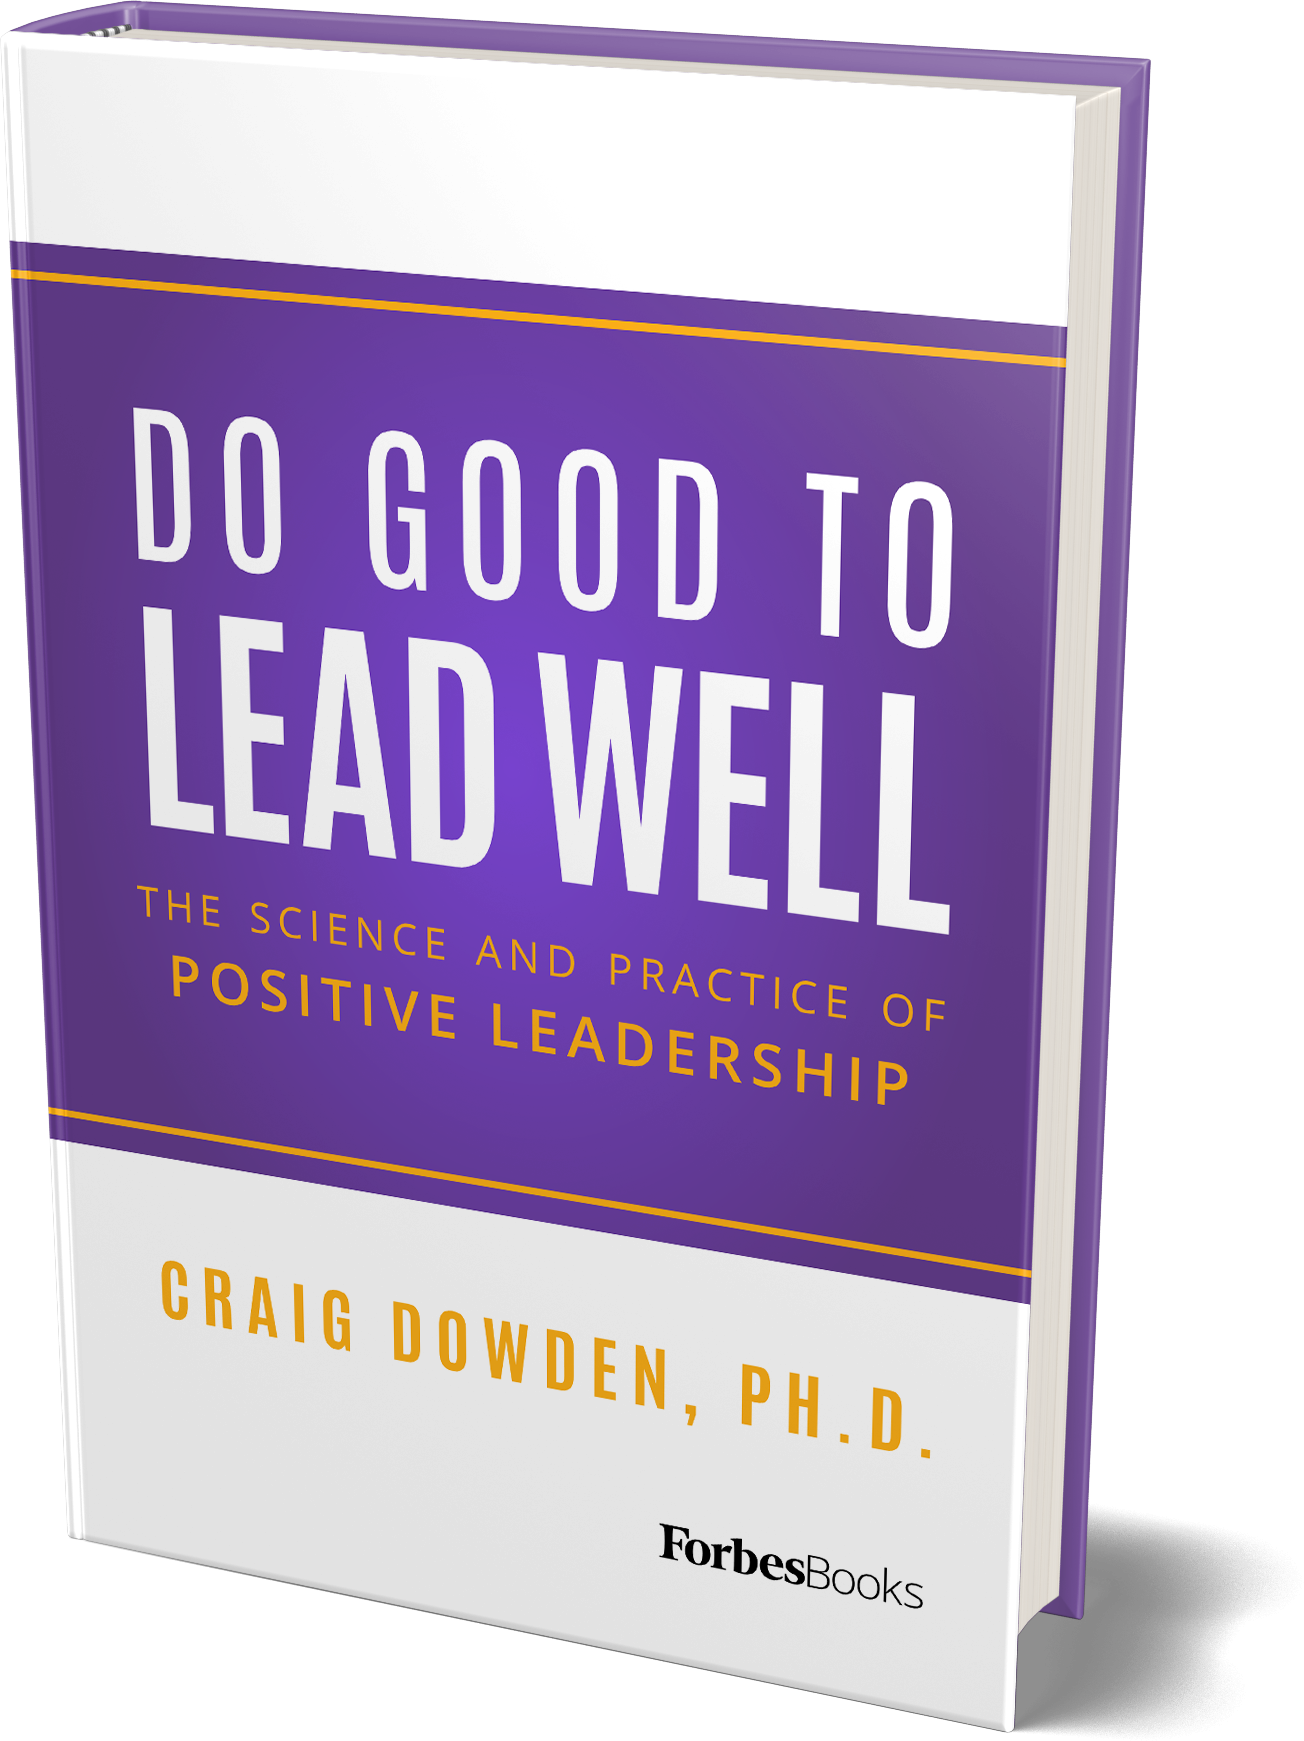 Leadership: We can be better people in business